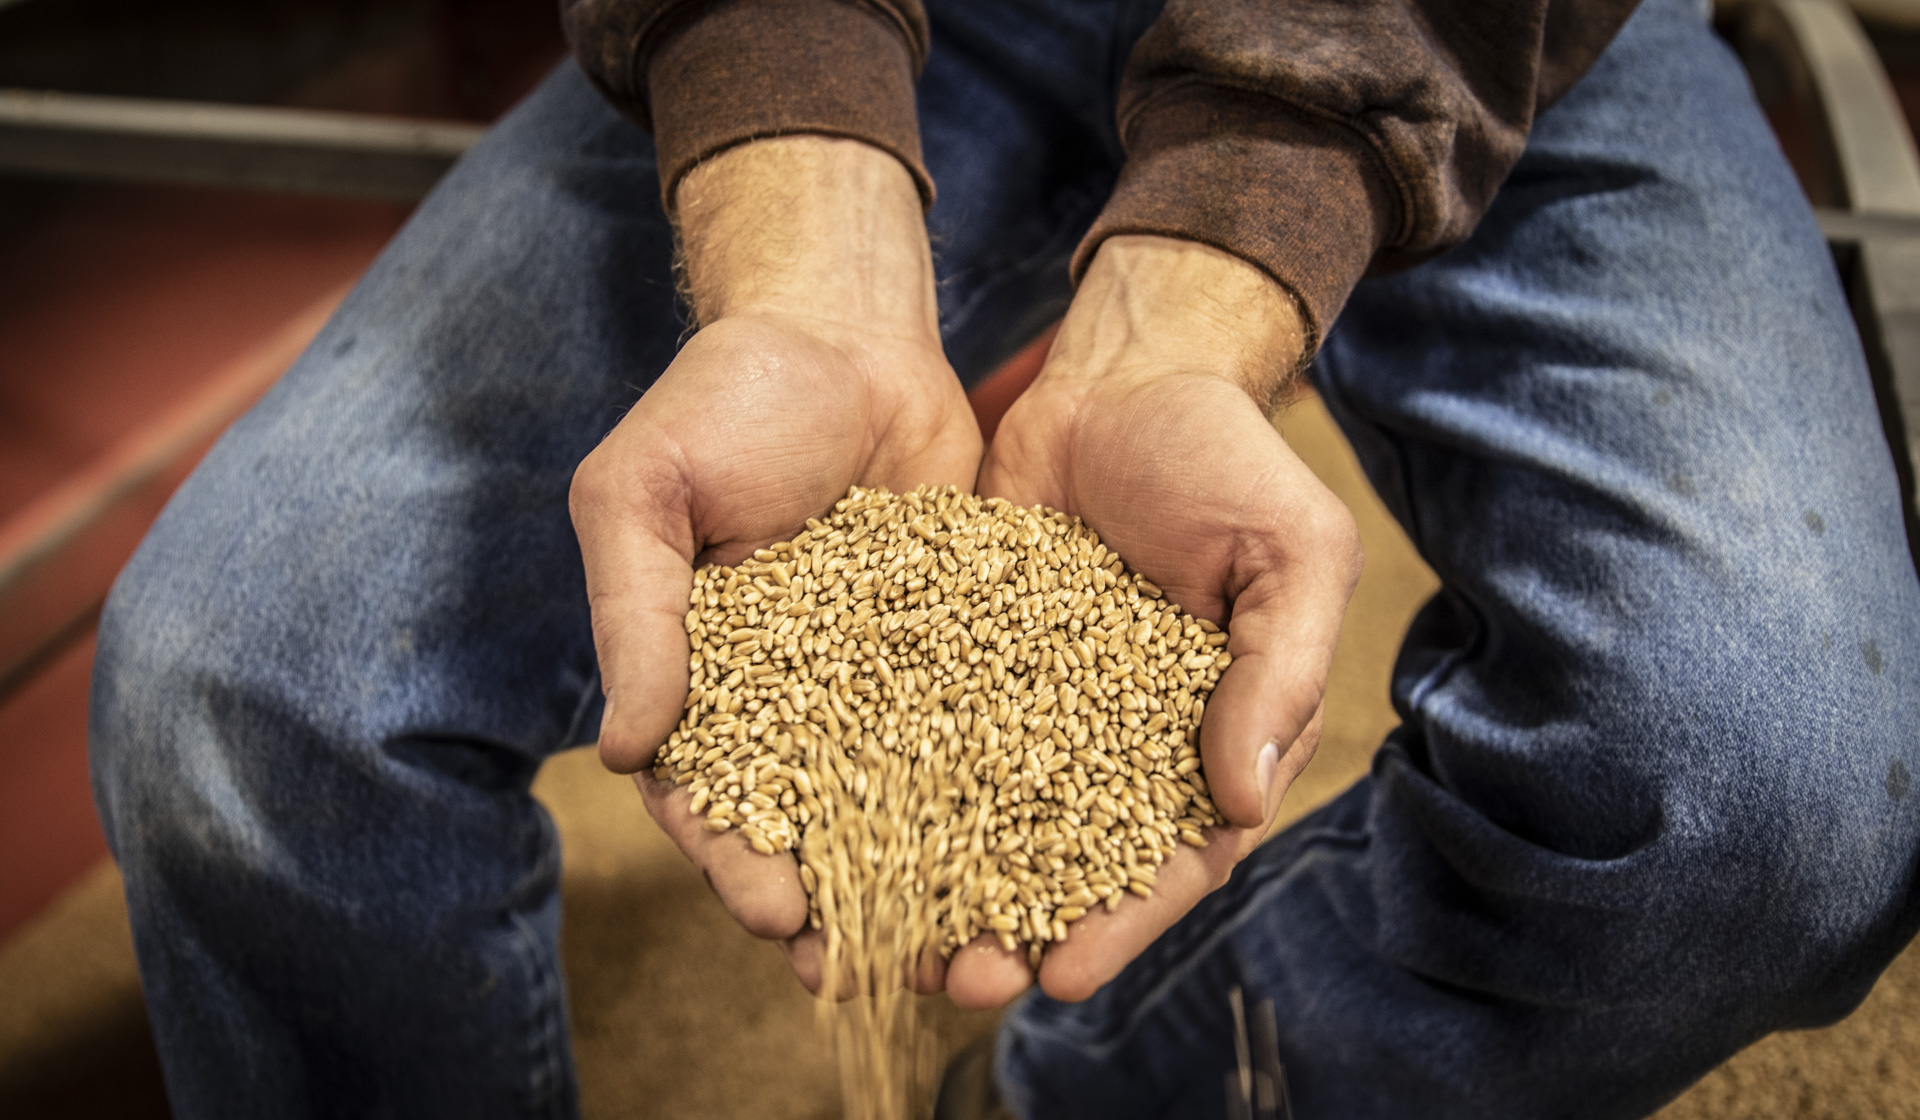 Jim's seed wheat business relies on the purity of the product.